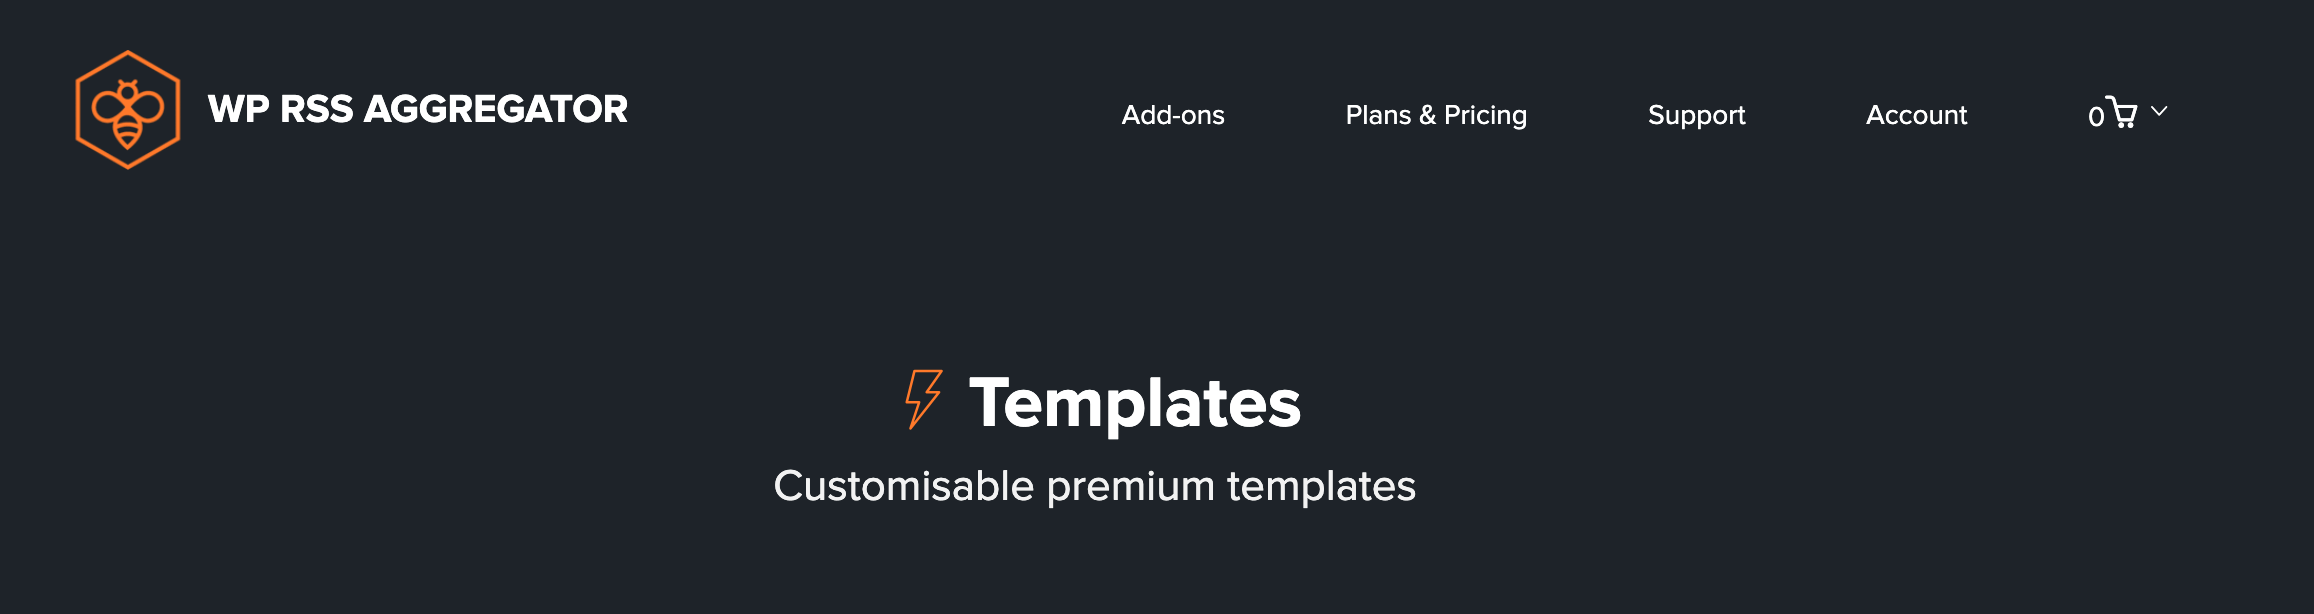 The WP RSS Aggregator plugin Templates add-on.